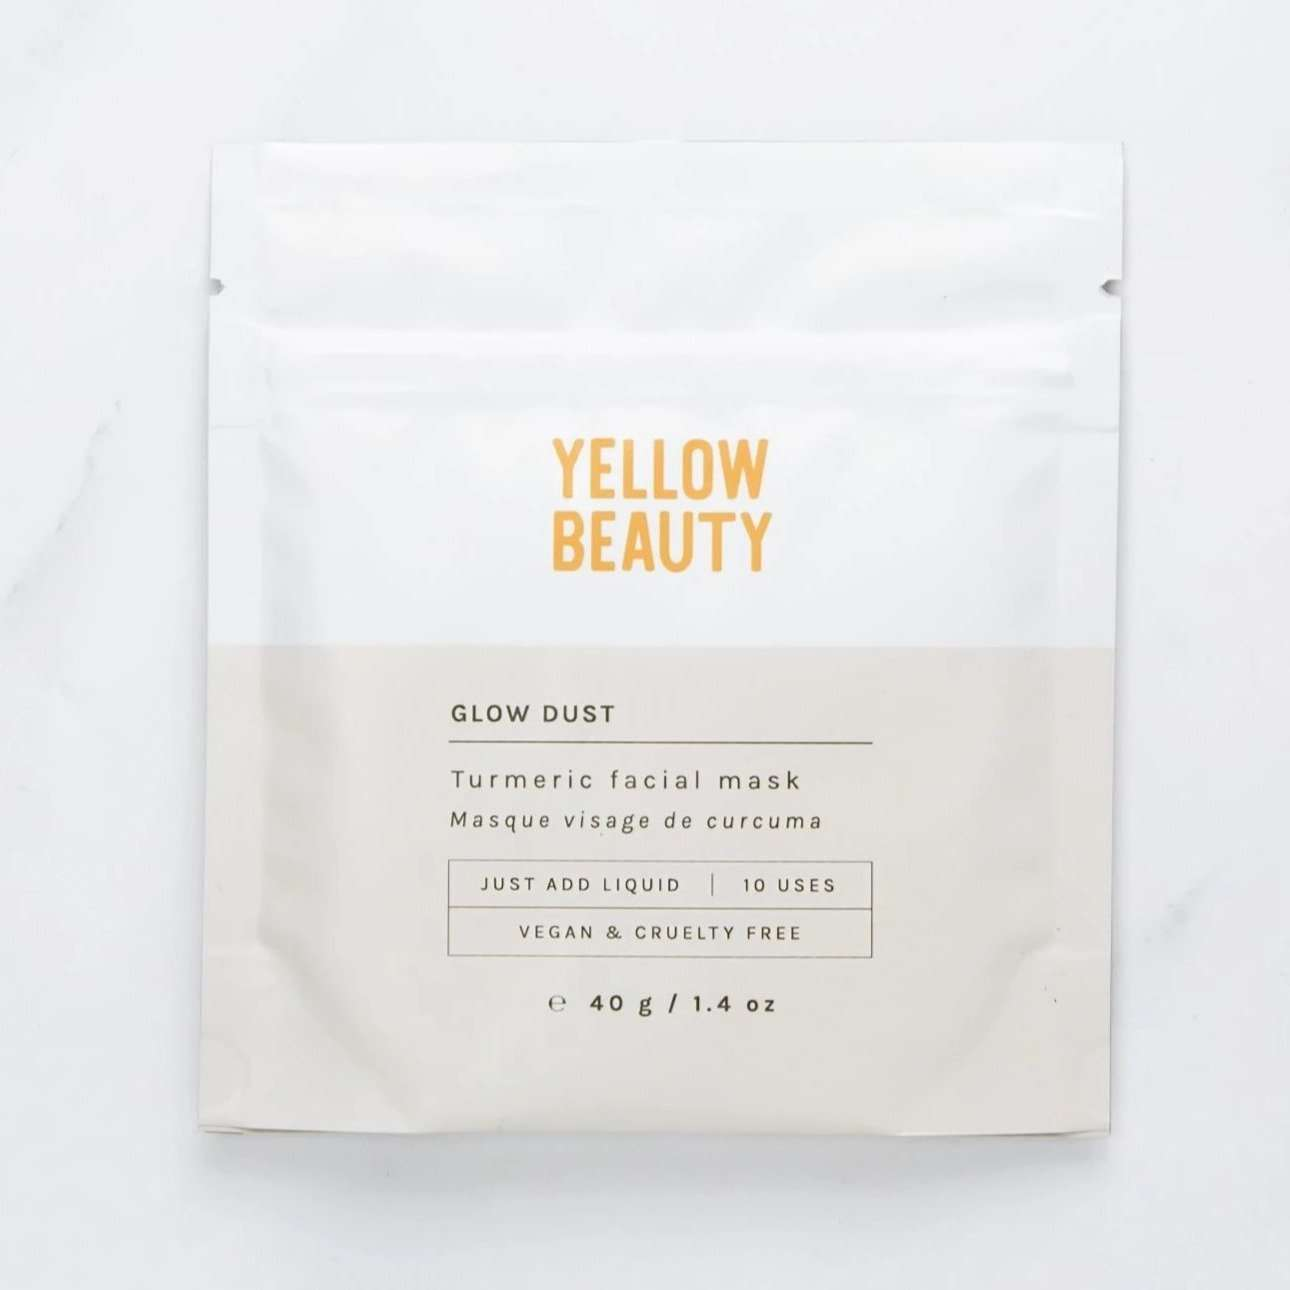 Jiyubox: Glow Dust Detoxifying Mask by Yellow Beauty